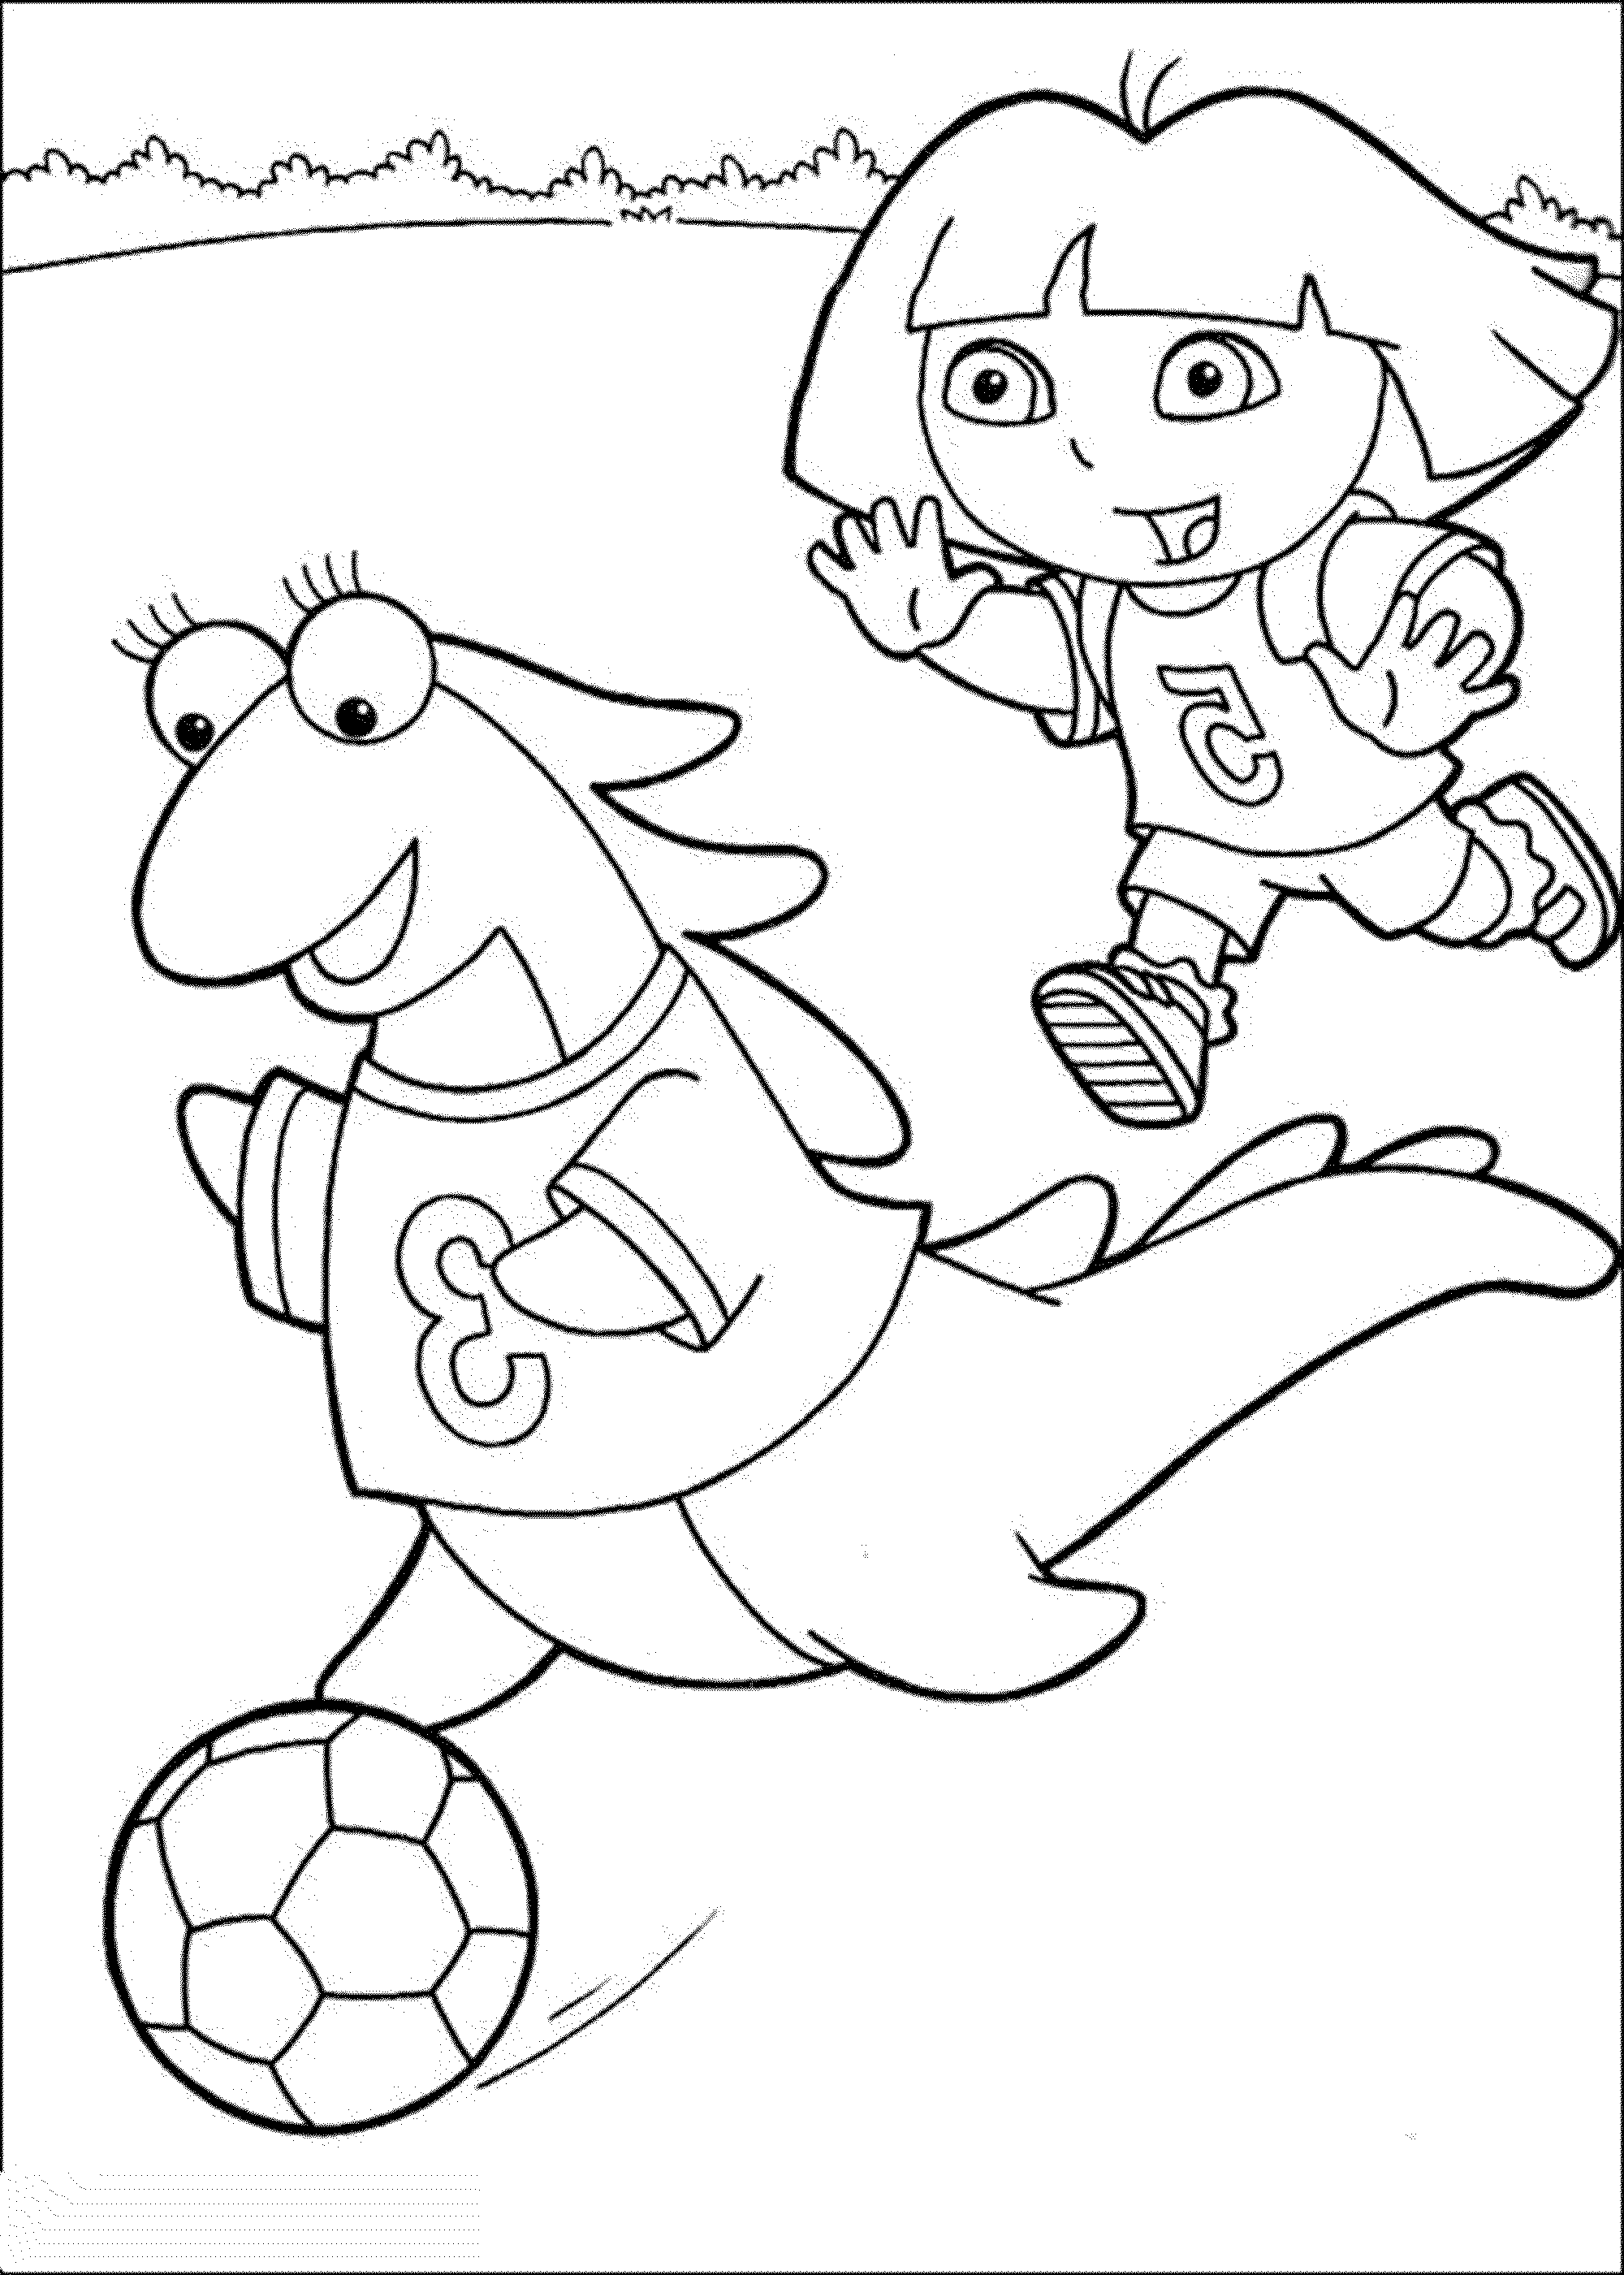 dora color pages print download dora coloring pages to learn new things dora color pages